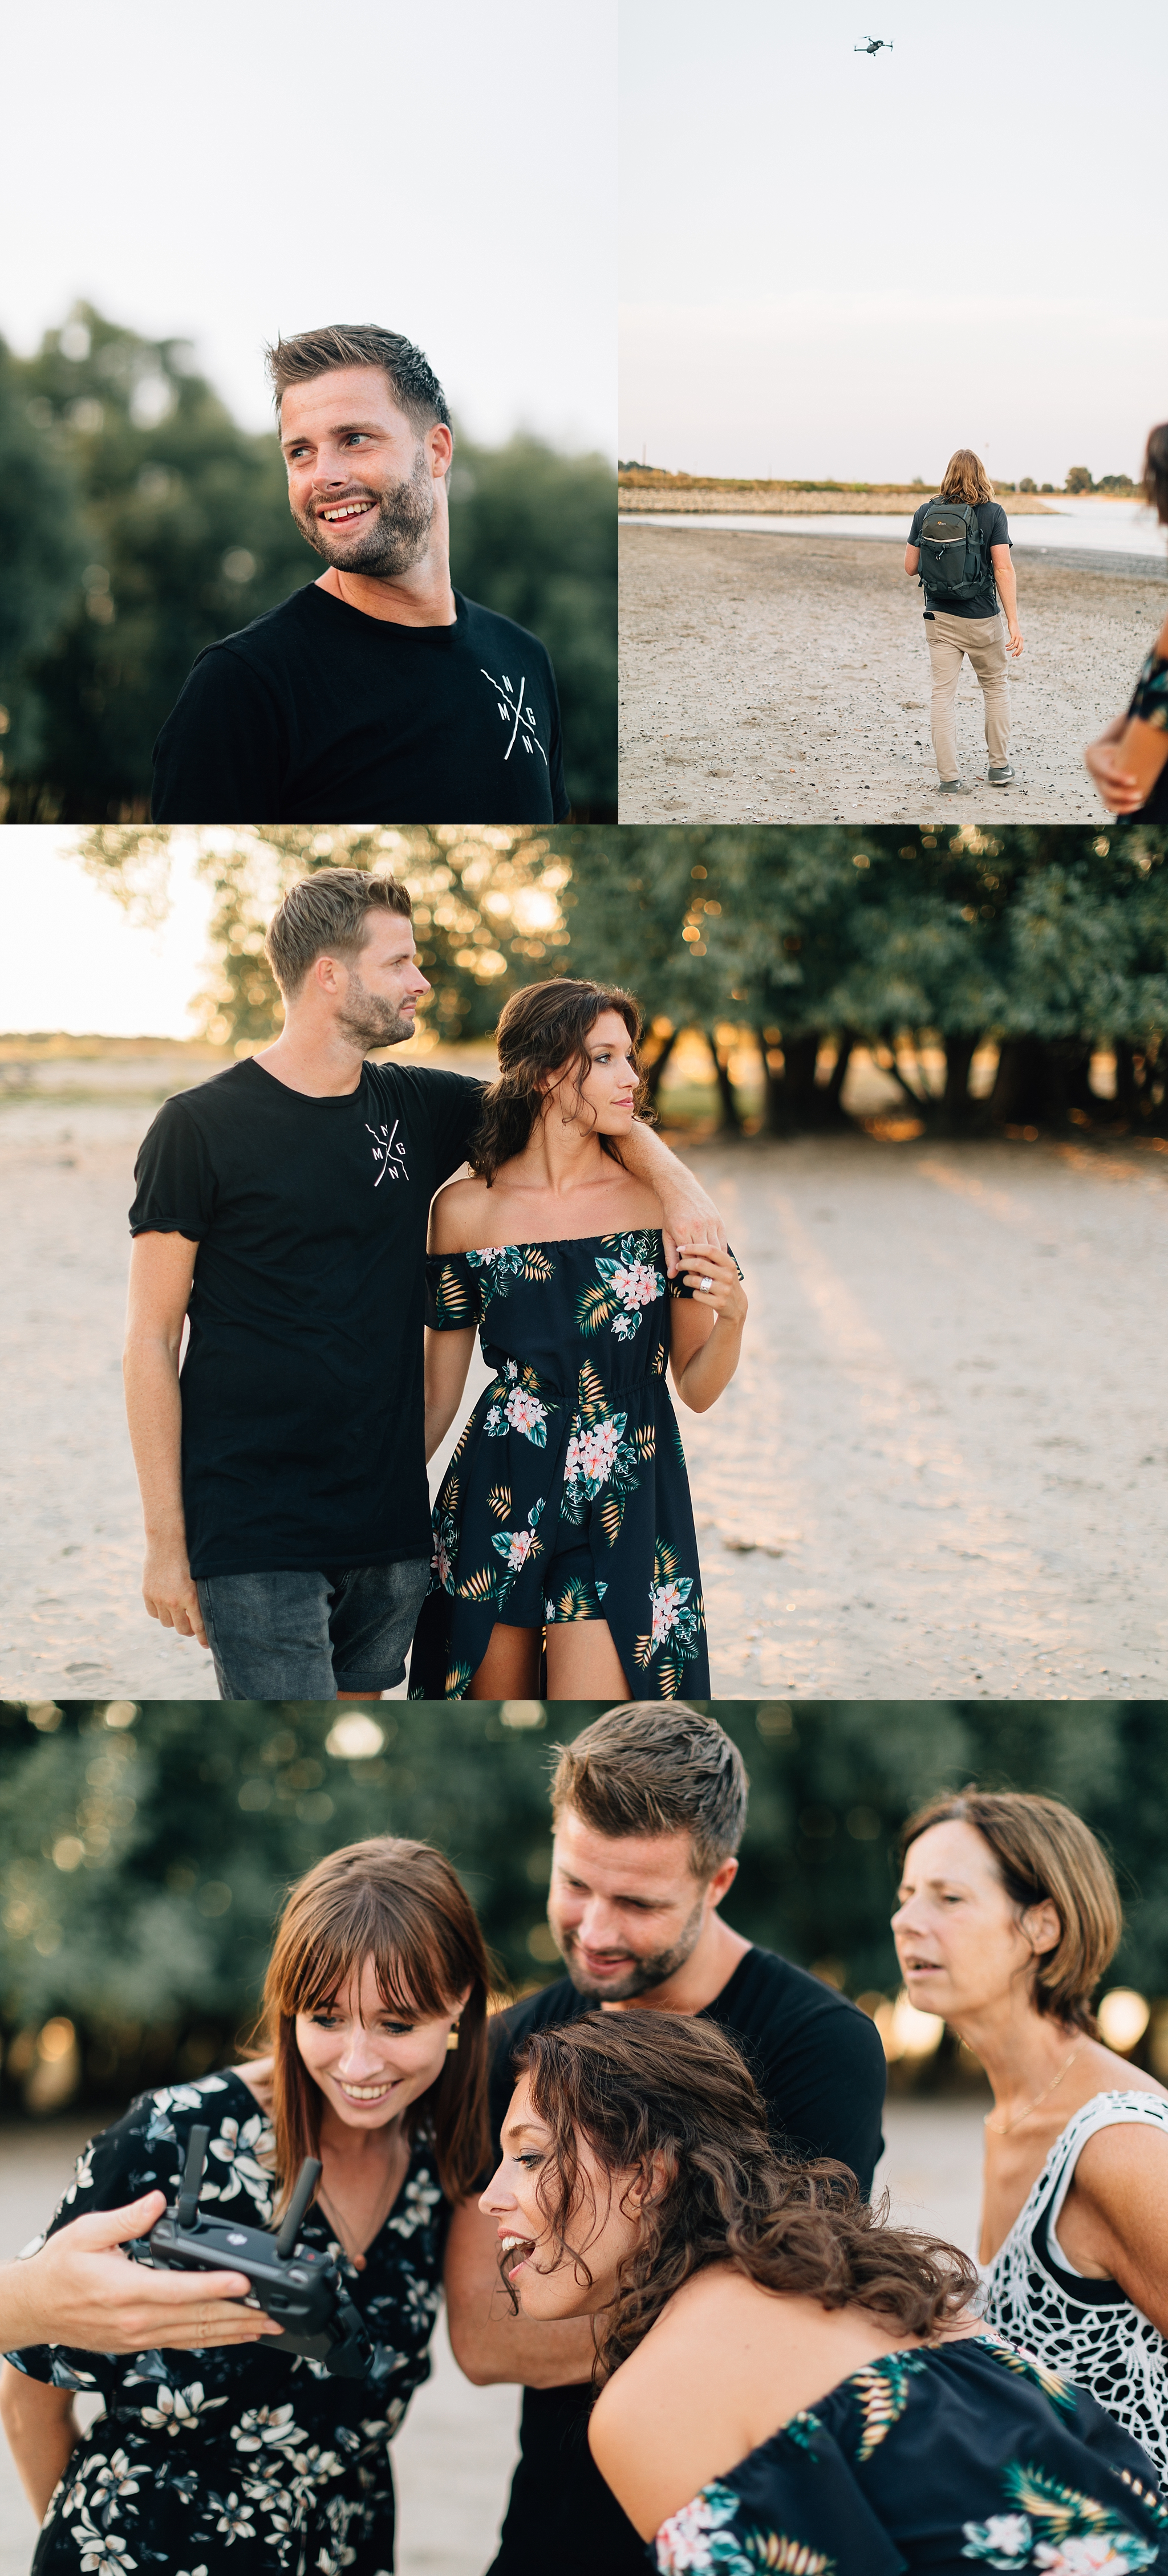 Bas + Jody's Wedding | Nijmegen, Holland